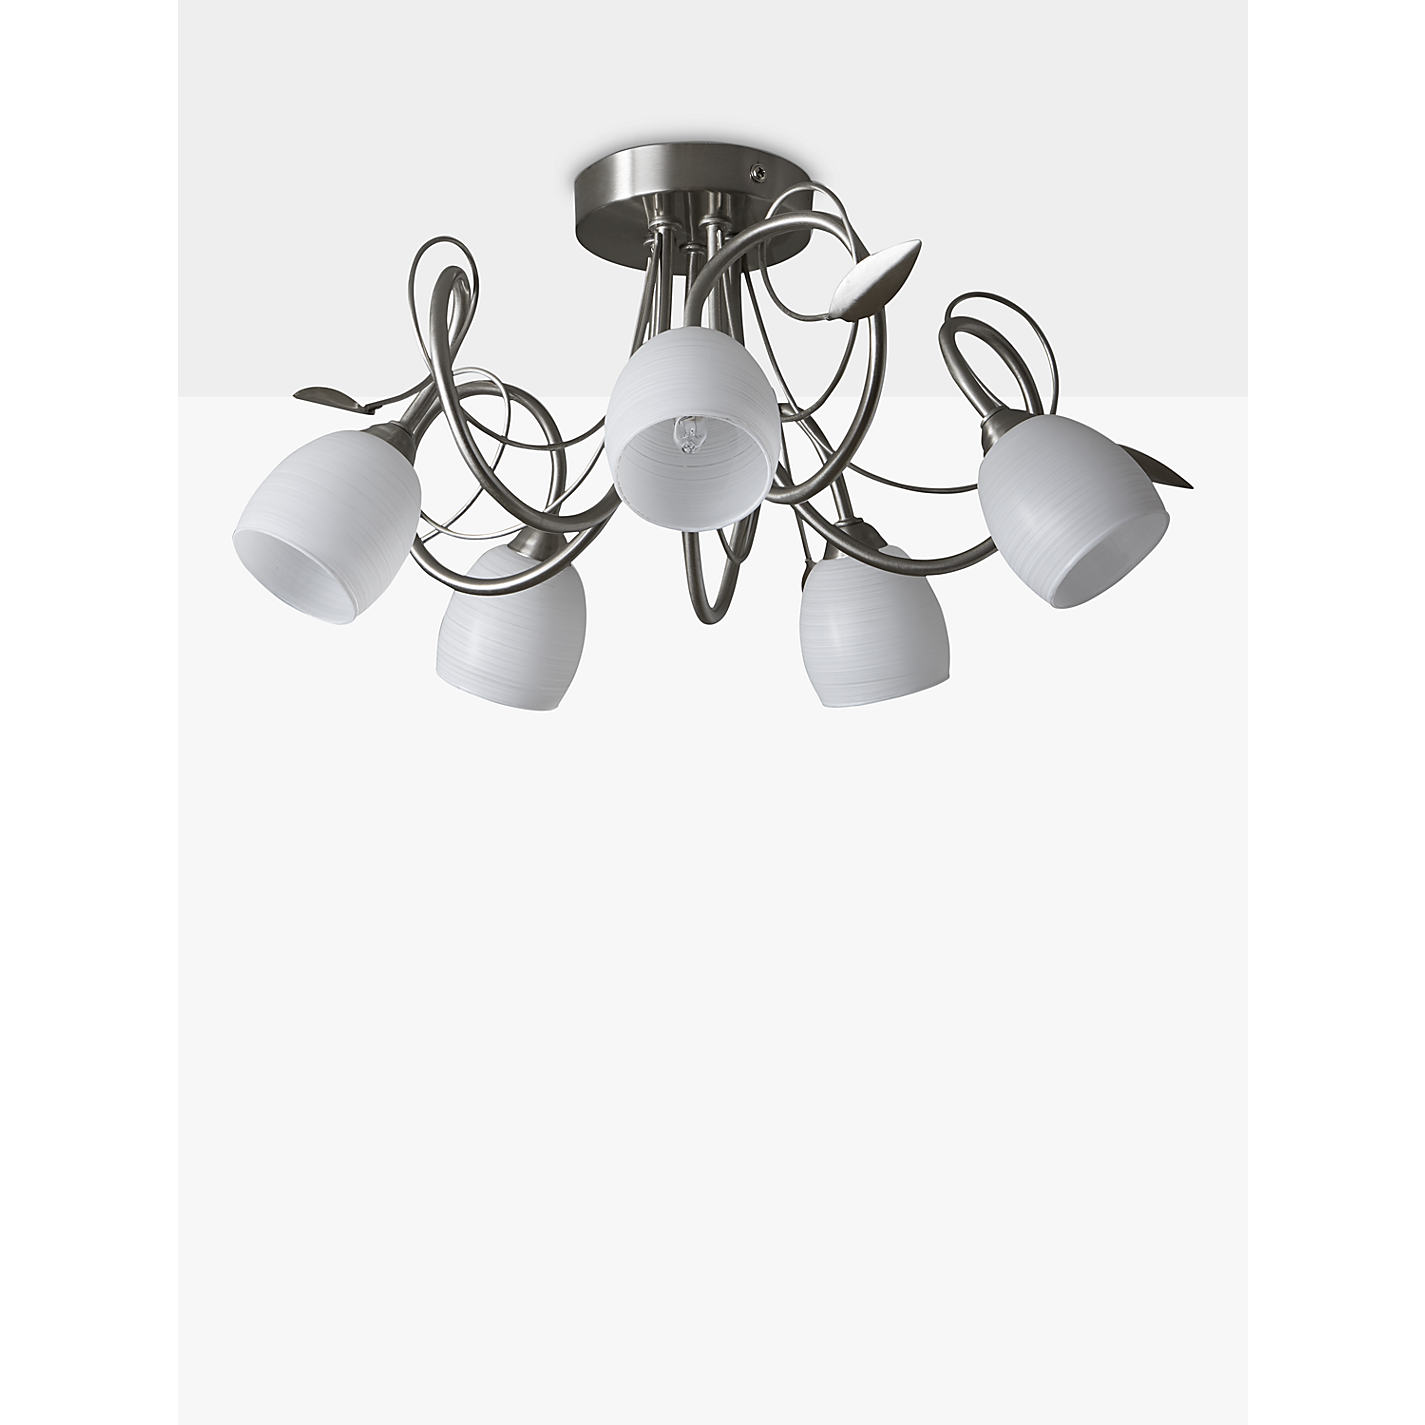 Buy john lewis amara ceiling light 5 arm john lewis buy john lewis amara ceiling light 5 arm online at johnlewis aloadofball Choice Image